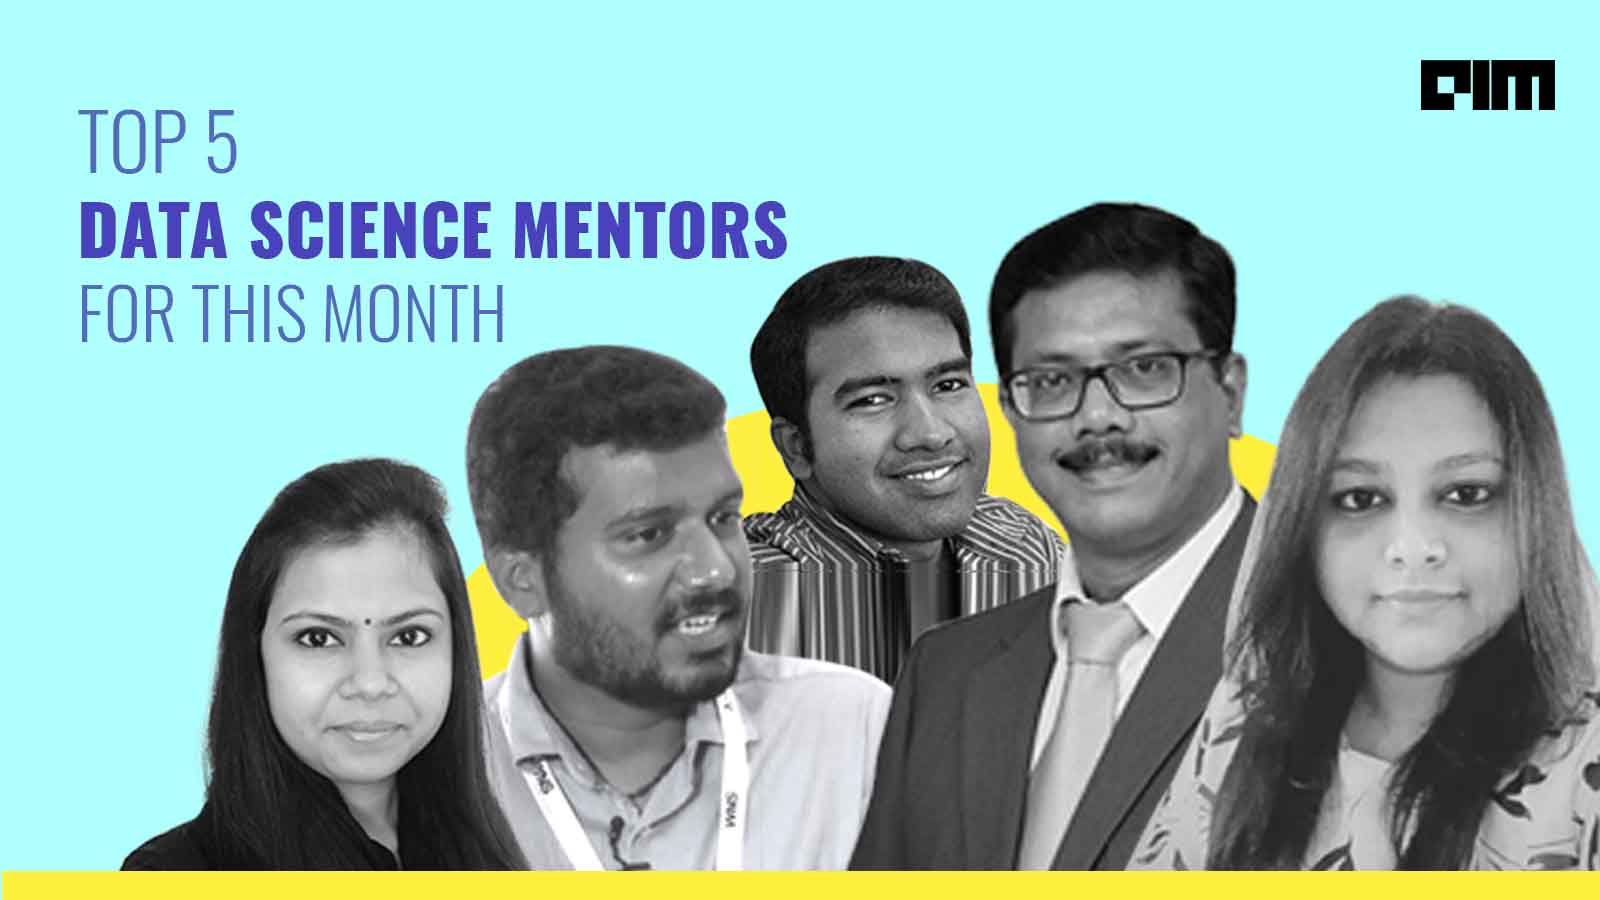 Top Data Science Mentors For This Month